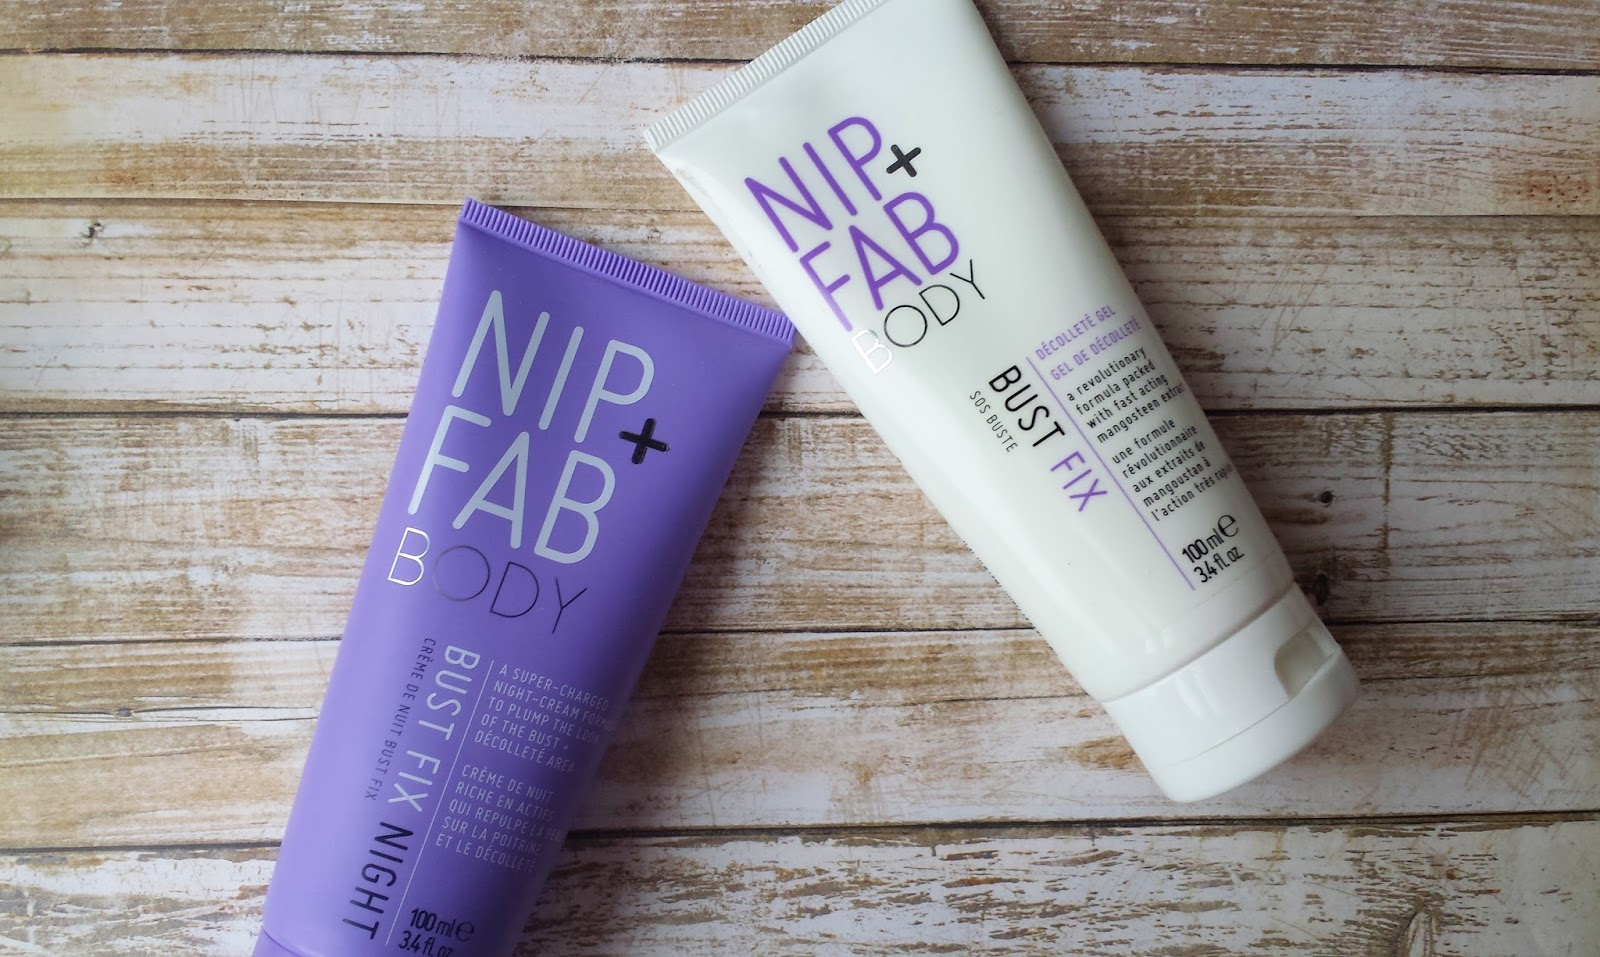 a review of Nip+Fab products